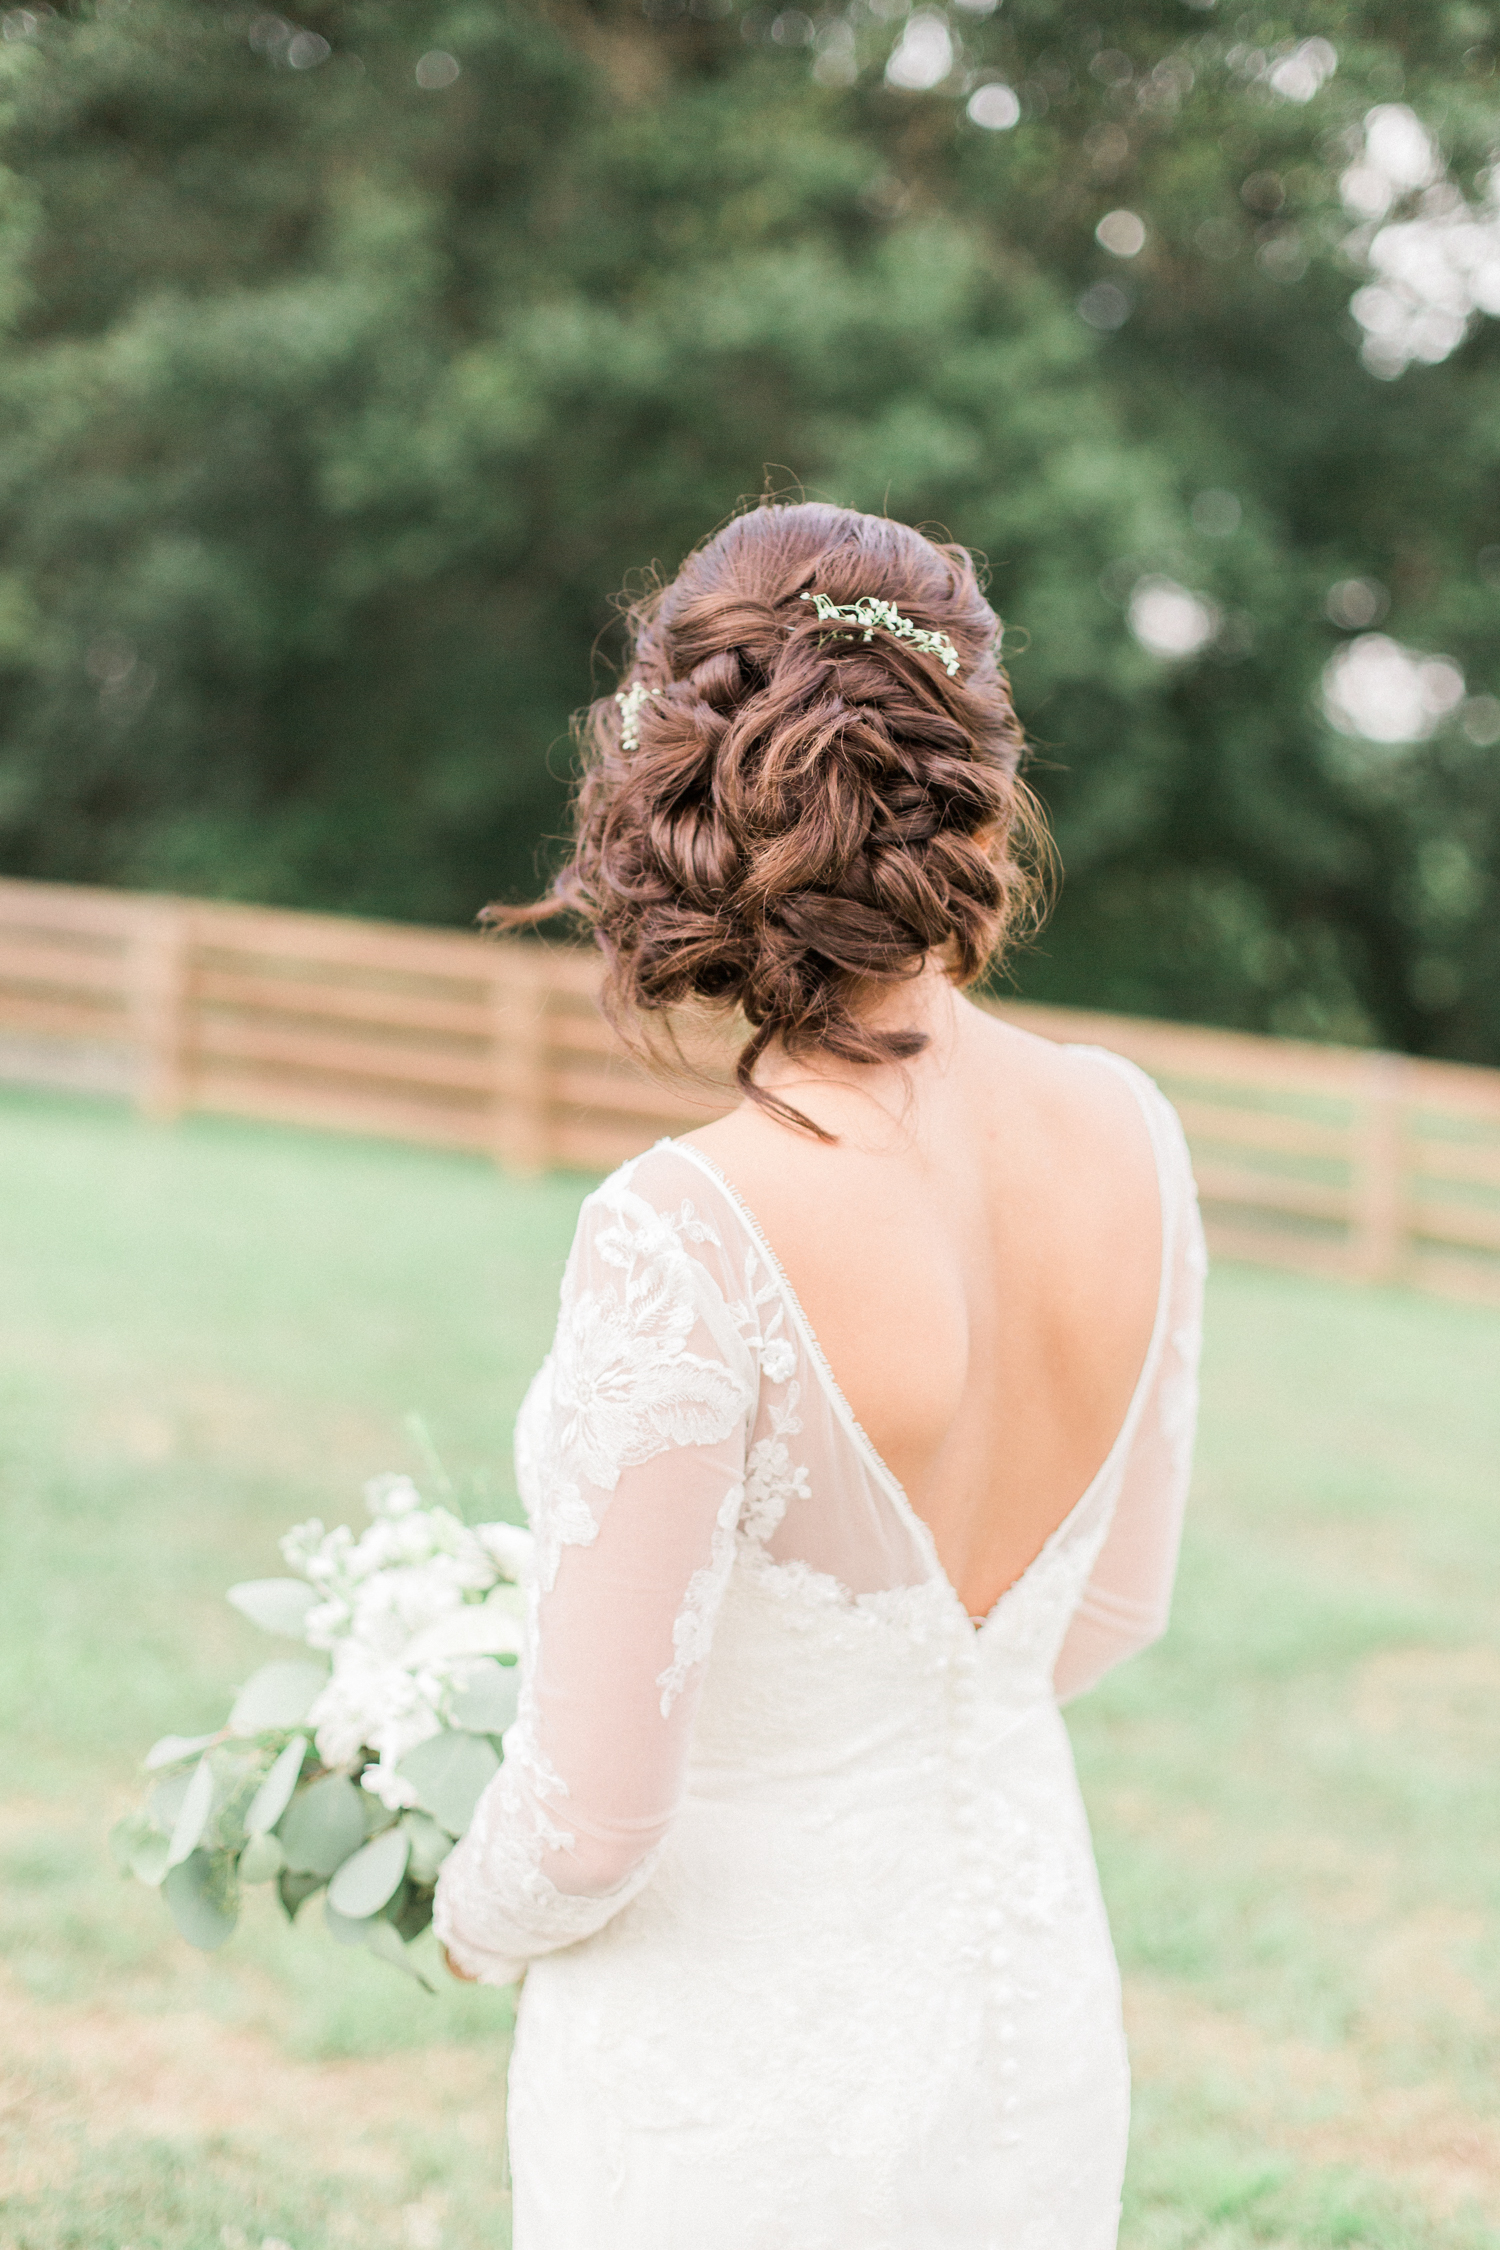 David's Bridal long sleeved lace wedding dress with an open back. Summer, outdoor, barn wedding in north Georgia at Hays McDonald Farm in Jefferson, Georgia. Photo by Kesia Marie Photography - Fine Art Wedding Photographer.